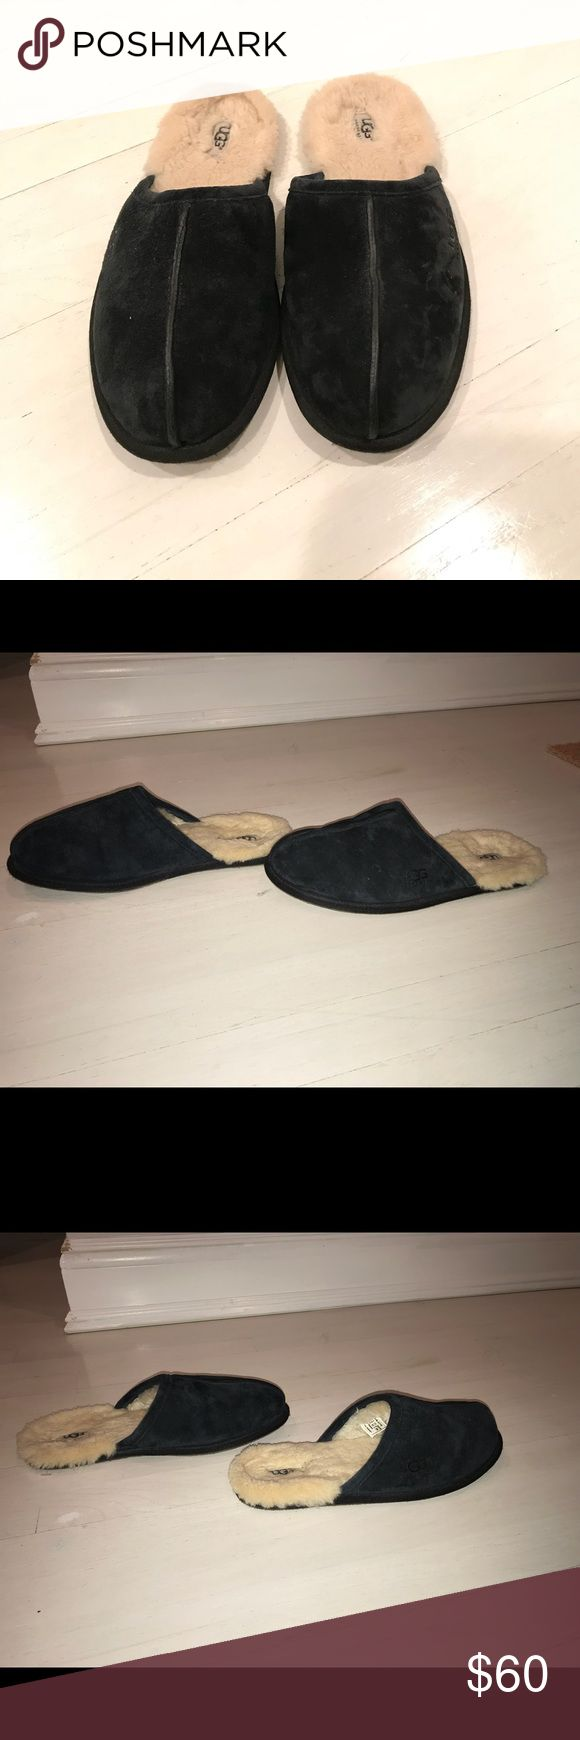 UGG SLIPPERS BLACK UGG SLIPPERS Good condition  gently used  SIZE 10 Buy 2 items get3RD HALF OFF  , Bundle discounts & accepting all reasonable offers !! UGG Shoes Slippers